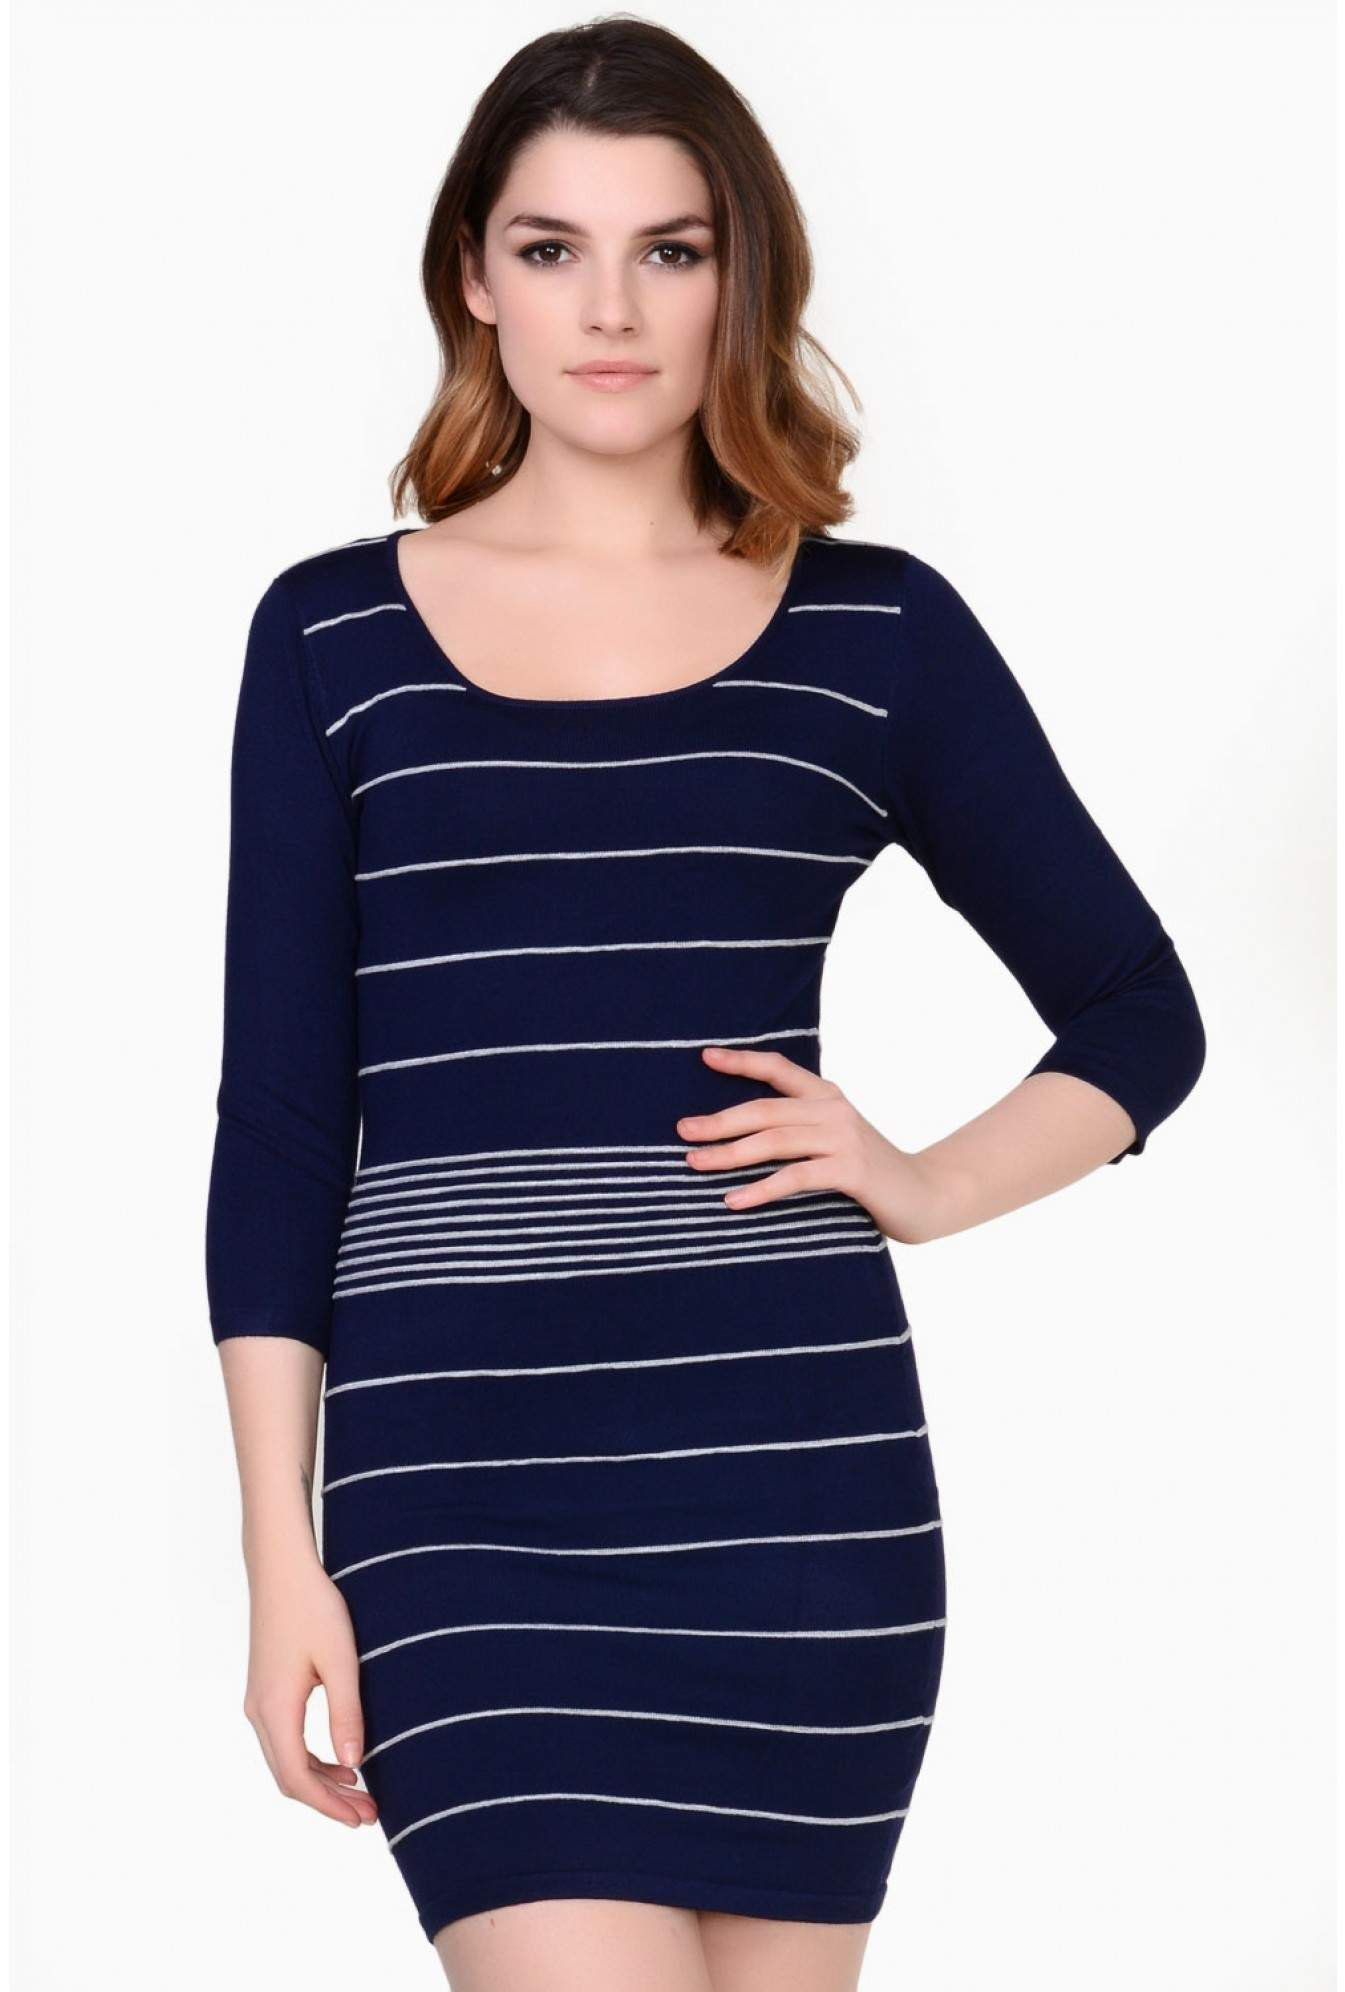 97c0272105 Stella Kathleen Striped Bodycon Knit Dress in Navy | iCLOTHING